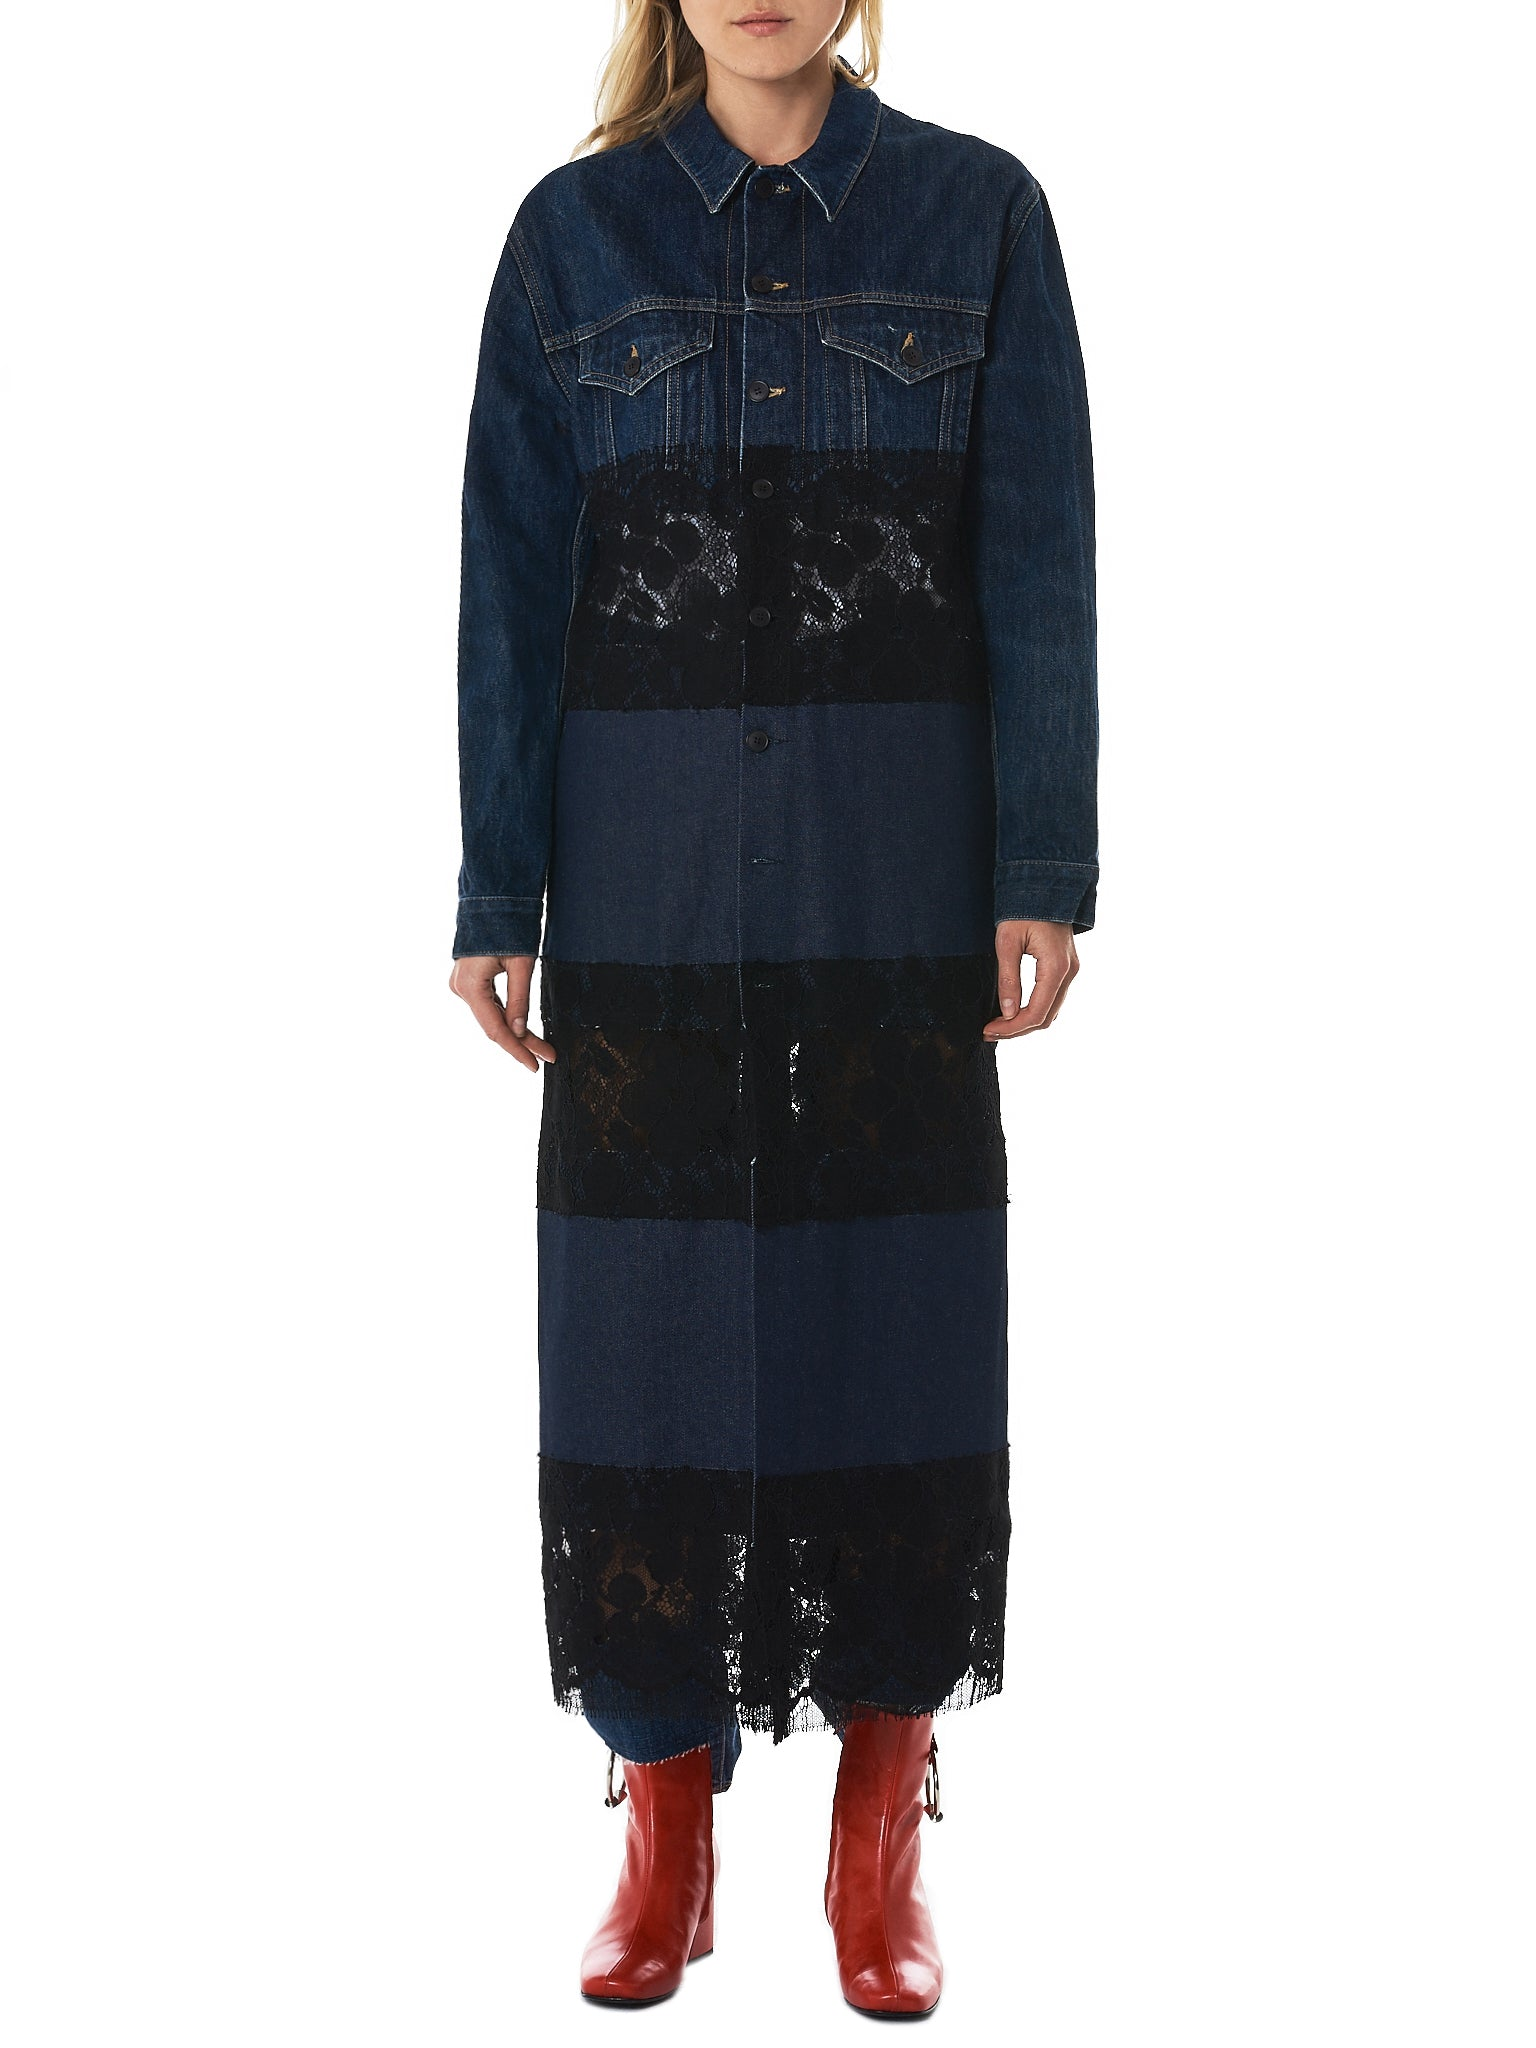 Lutz Huelle Denim Coat - Hlorenzo Front